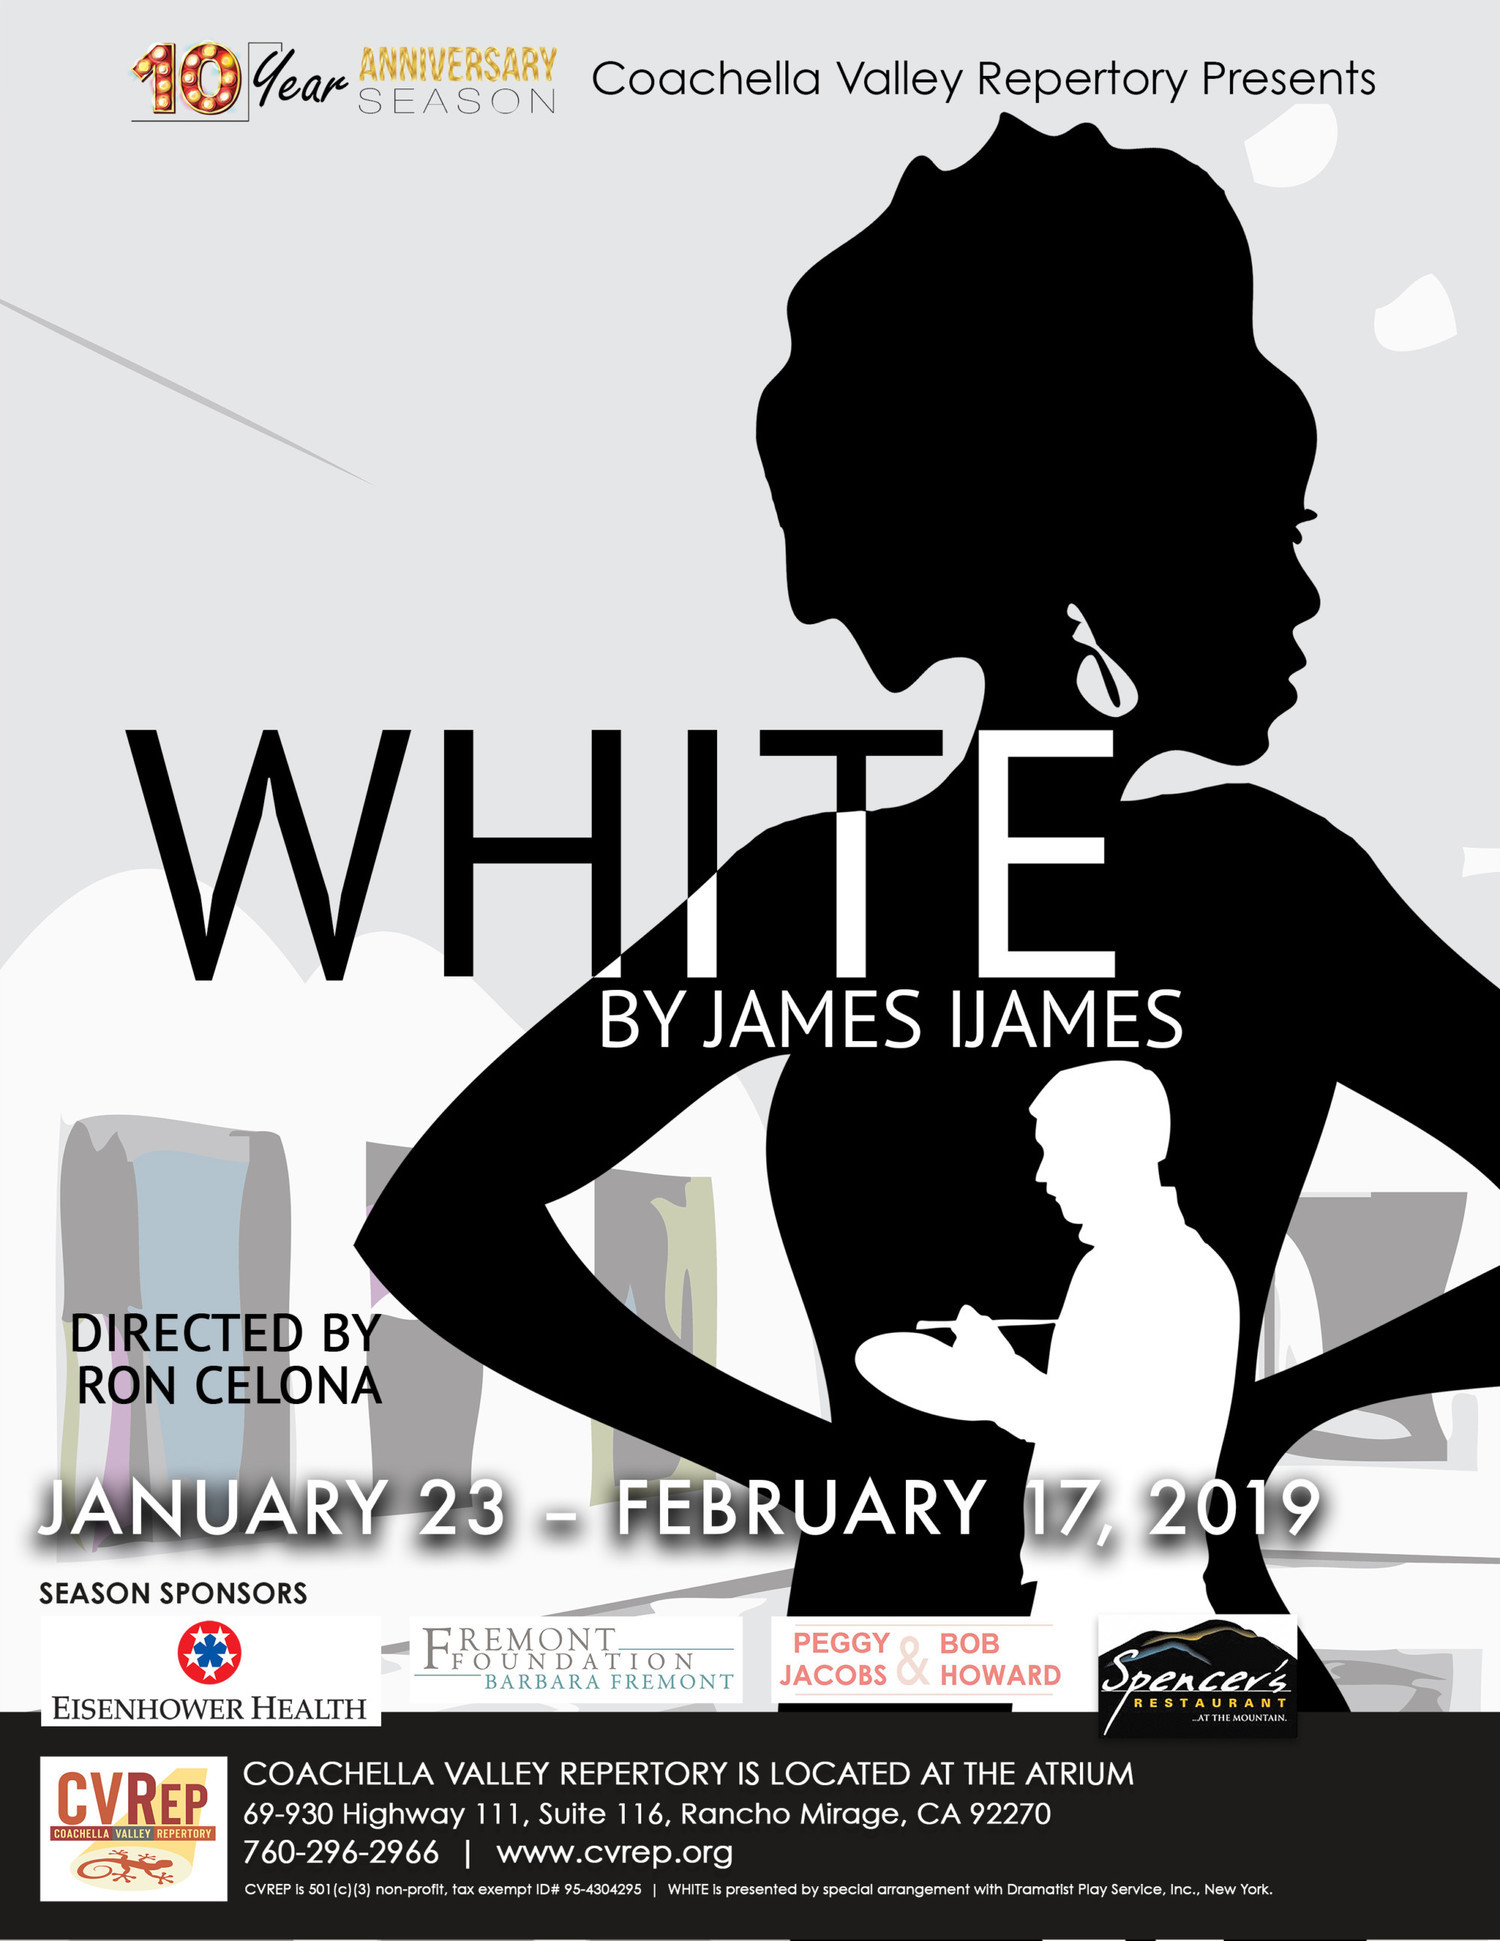 WHITE Comes To The CV Rep Theater